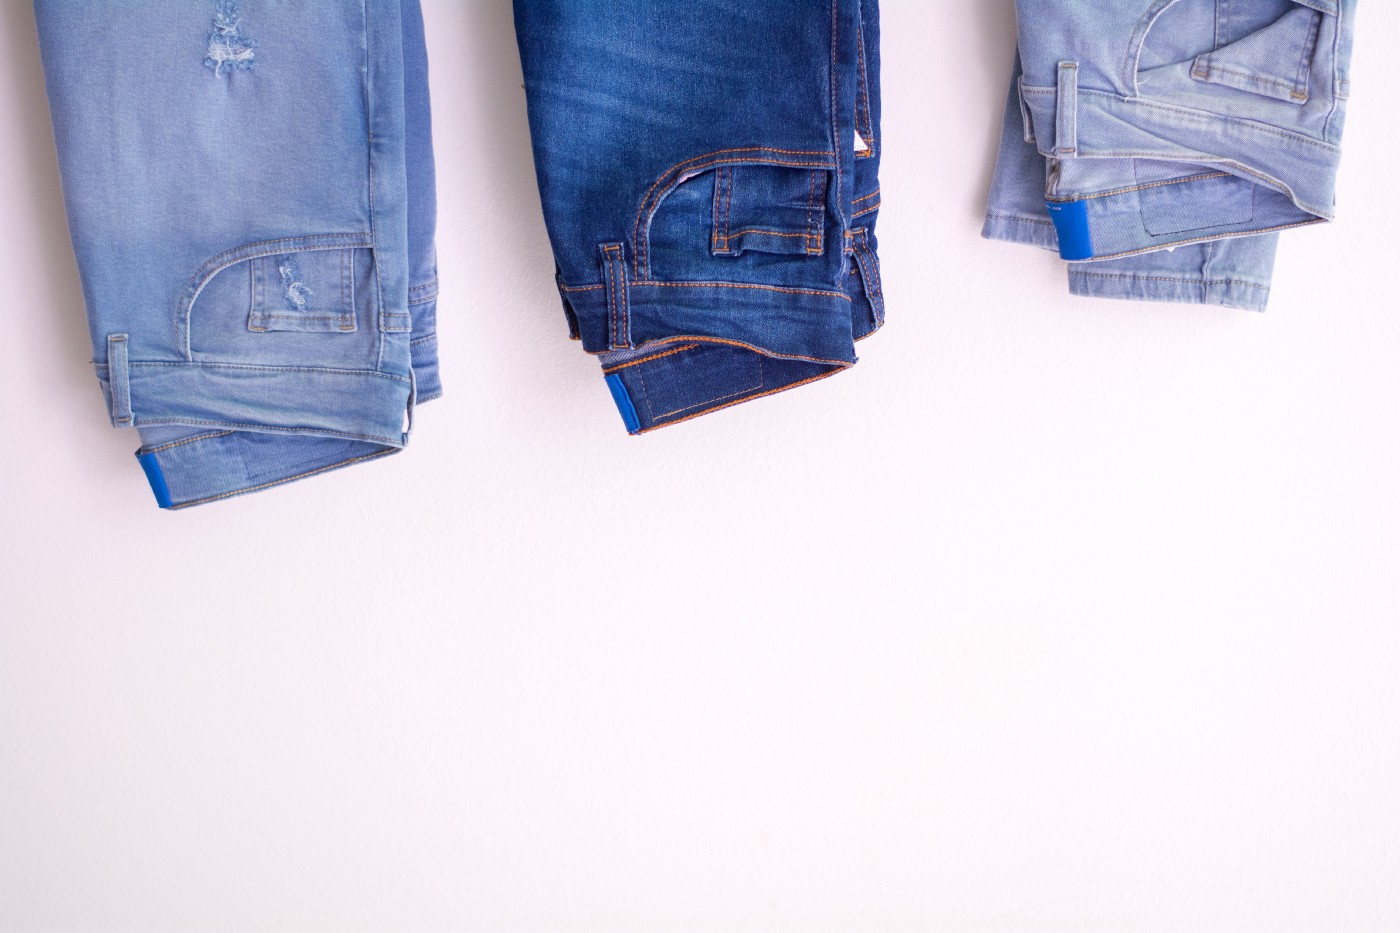 three pairs of denim jeans on an off-white background